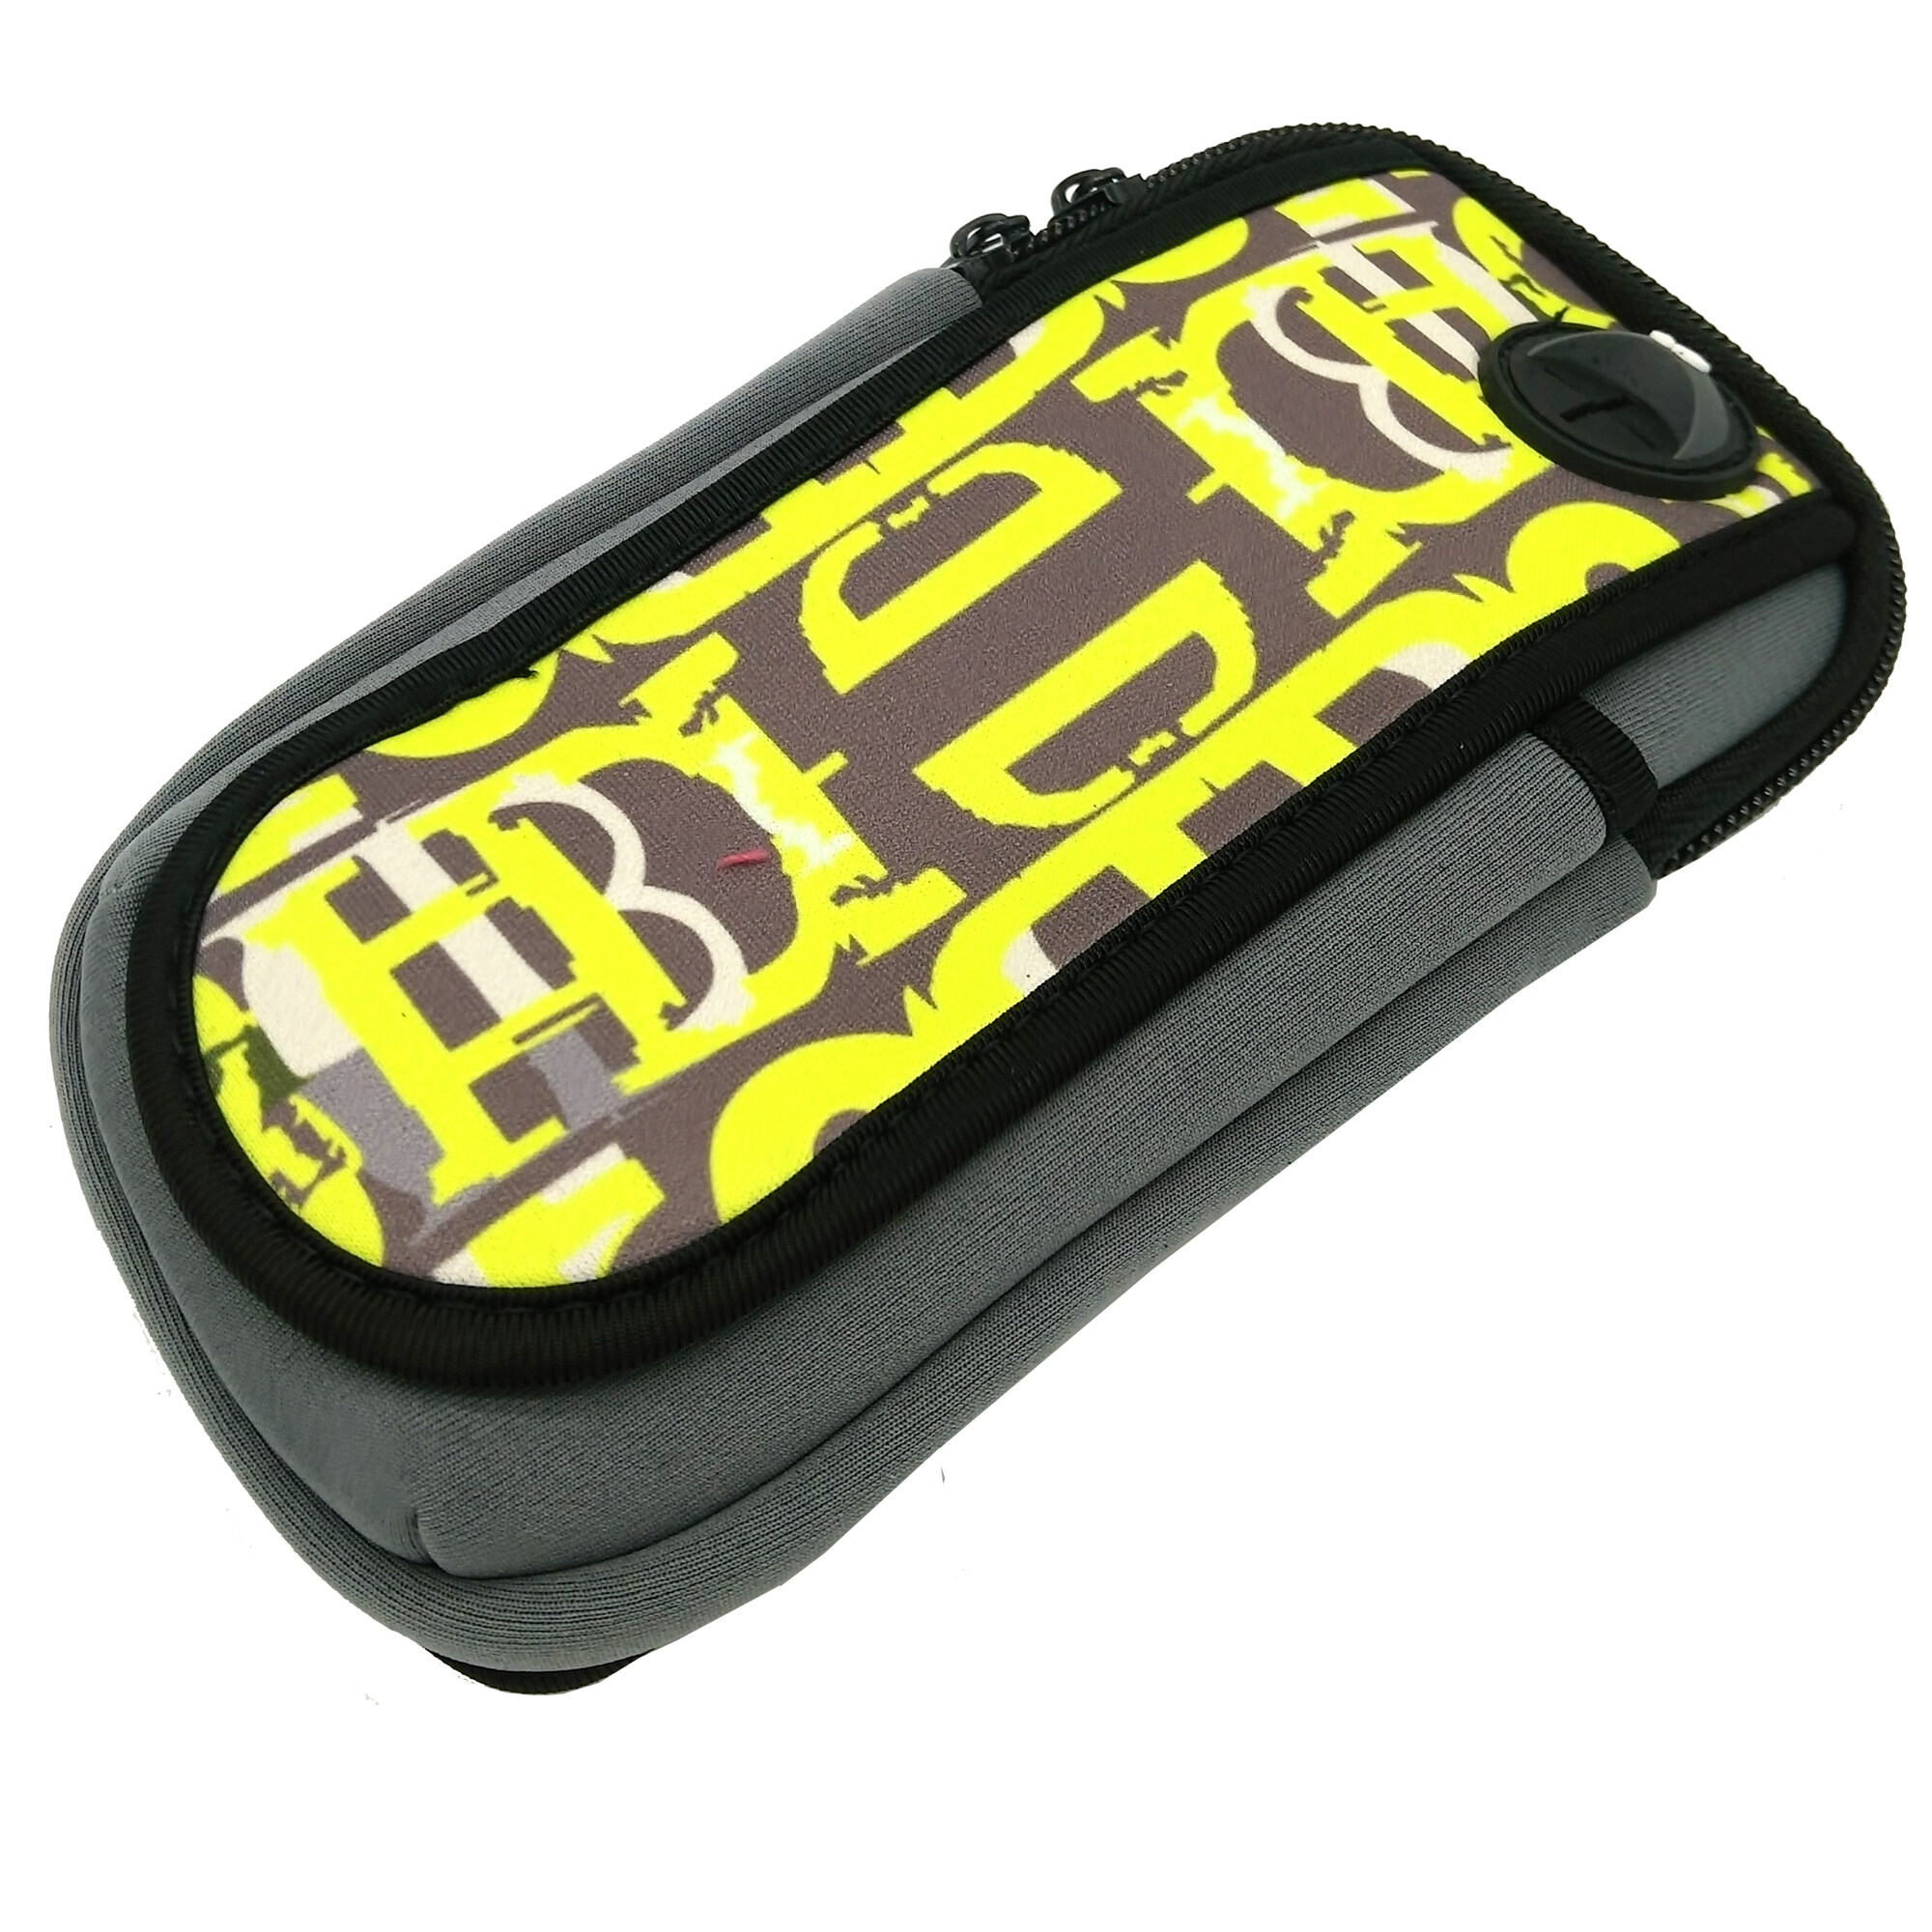 "18.5 x9.5 Sports Cycling Running Jogging Portable Wrist Pouch Mobile Cell Phone Hand Arm Band Bag Wallet Coin Purse For 1~6"" inch Iphone HTC Samsung And More (Grey & Yellow)"